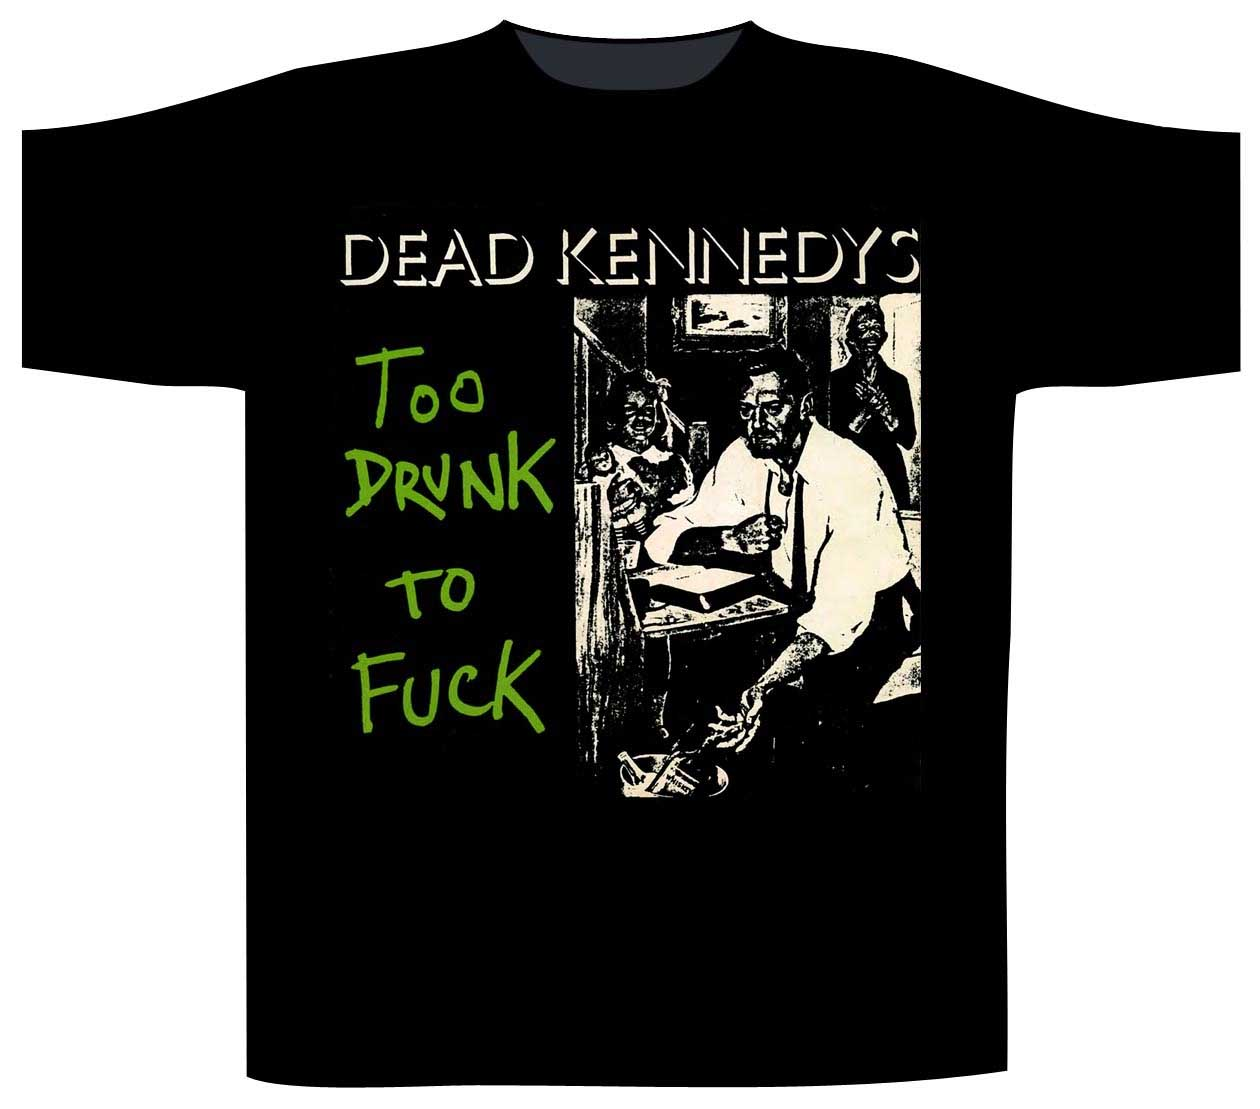 Dead Kennedys- Too Drunk To Fuck on front, Body Outline on back on a black shirt